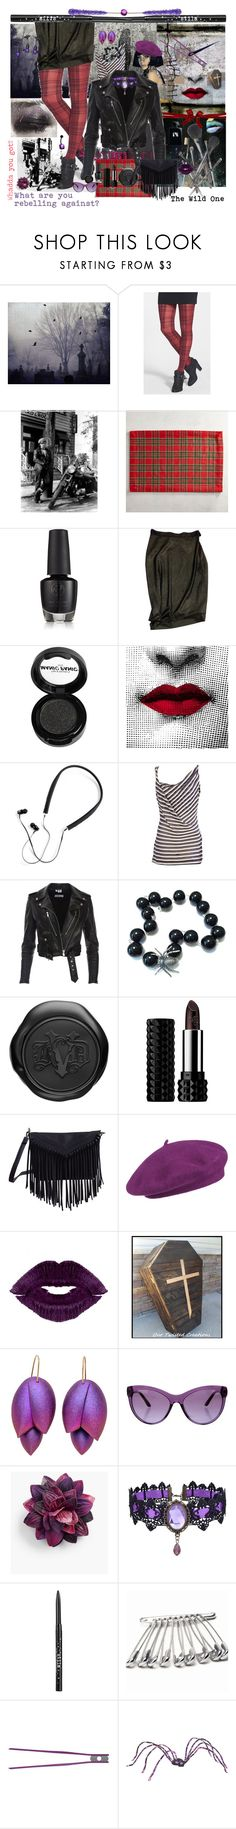 """""""The Wild One"""" by billiej-712 ❤ liked on Polyvore featuring Kat Von D, HUE, Pier 1 Imports, Vivienne Westwood, Manic Panic NYC, Fornasetti, Polaroid, Joe Fresh, Seeberger and Versace"""